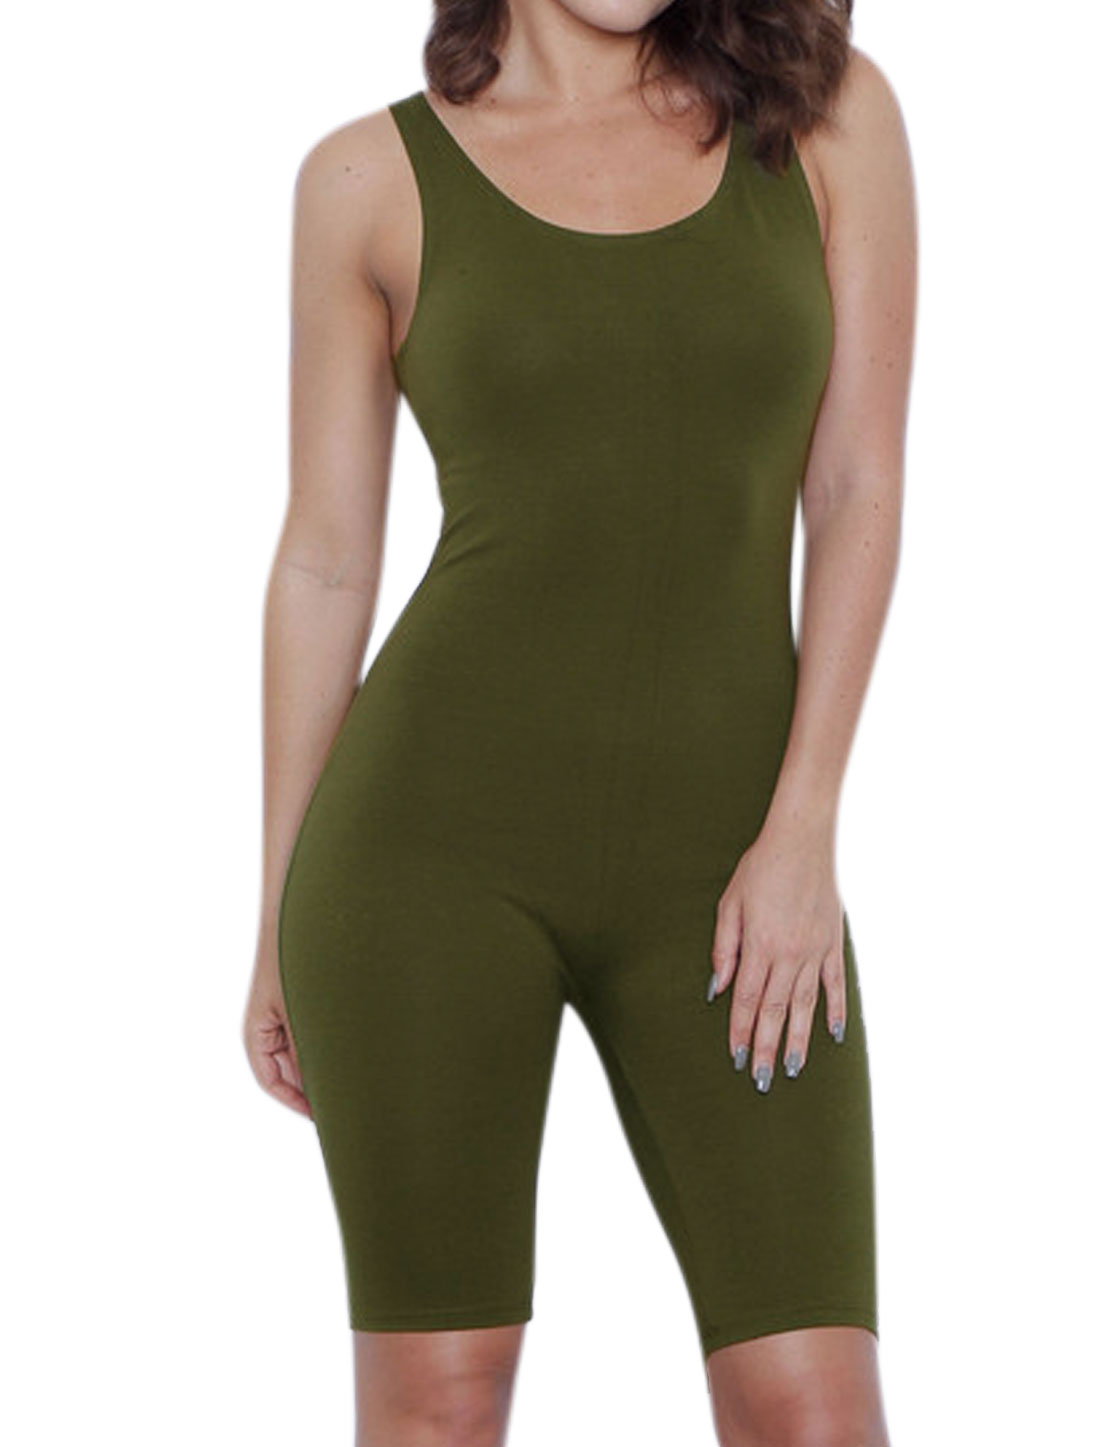 Women Scoop Neck Stretchy Knee Length Sport Romper Green L